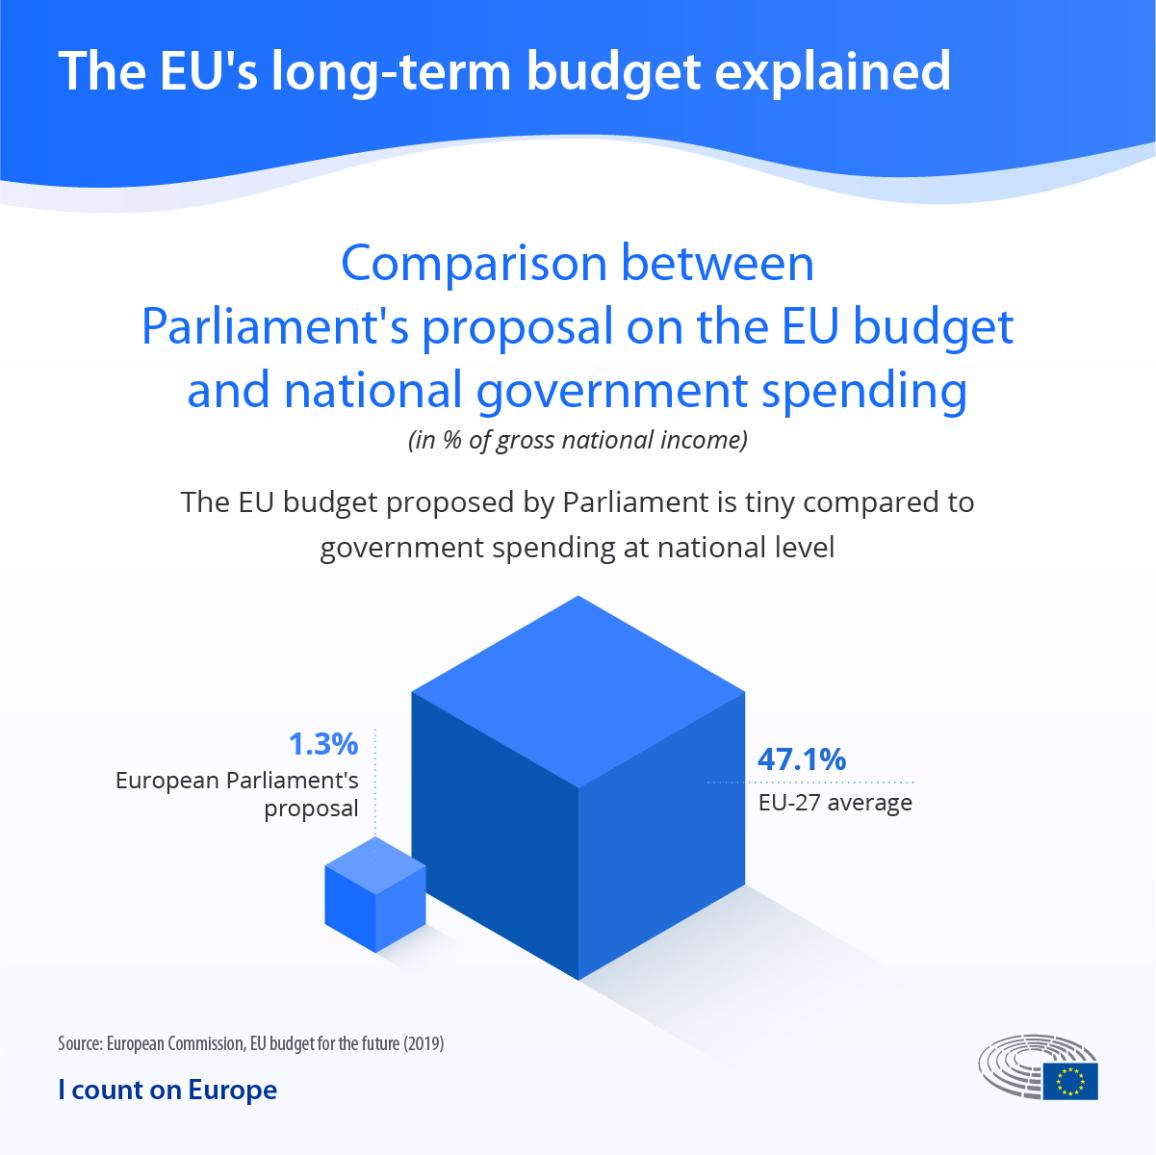 EU budget negotiations: Infographic comparing the European Parliament's proposal on the EU budget and national government spending